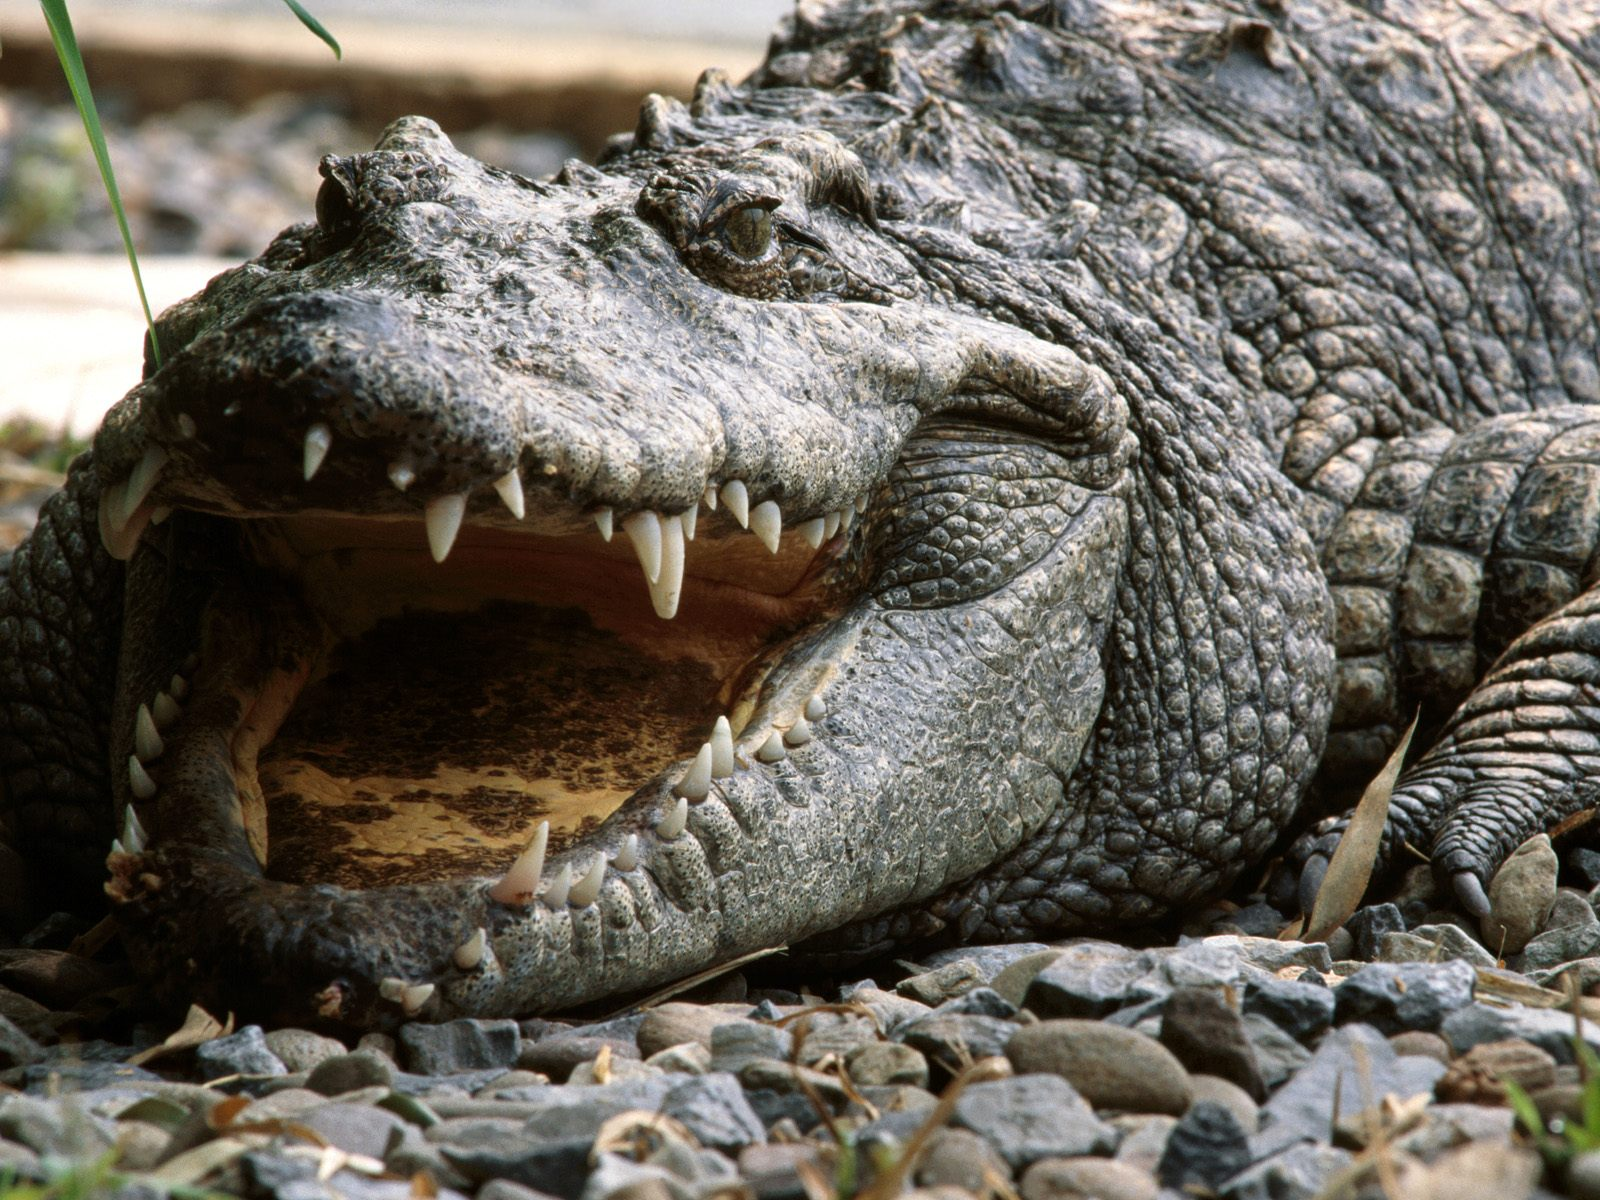 Animals image Crocodile HD wallpapers and backgrounds photos